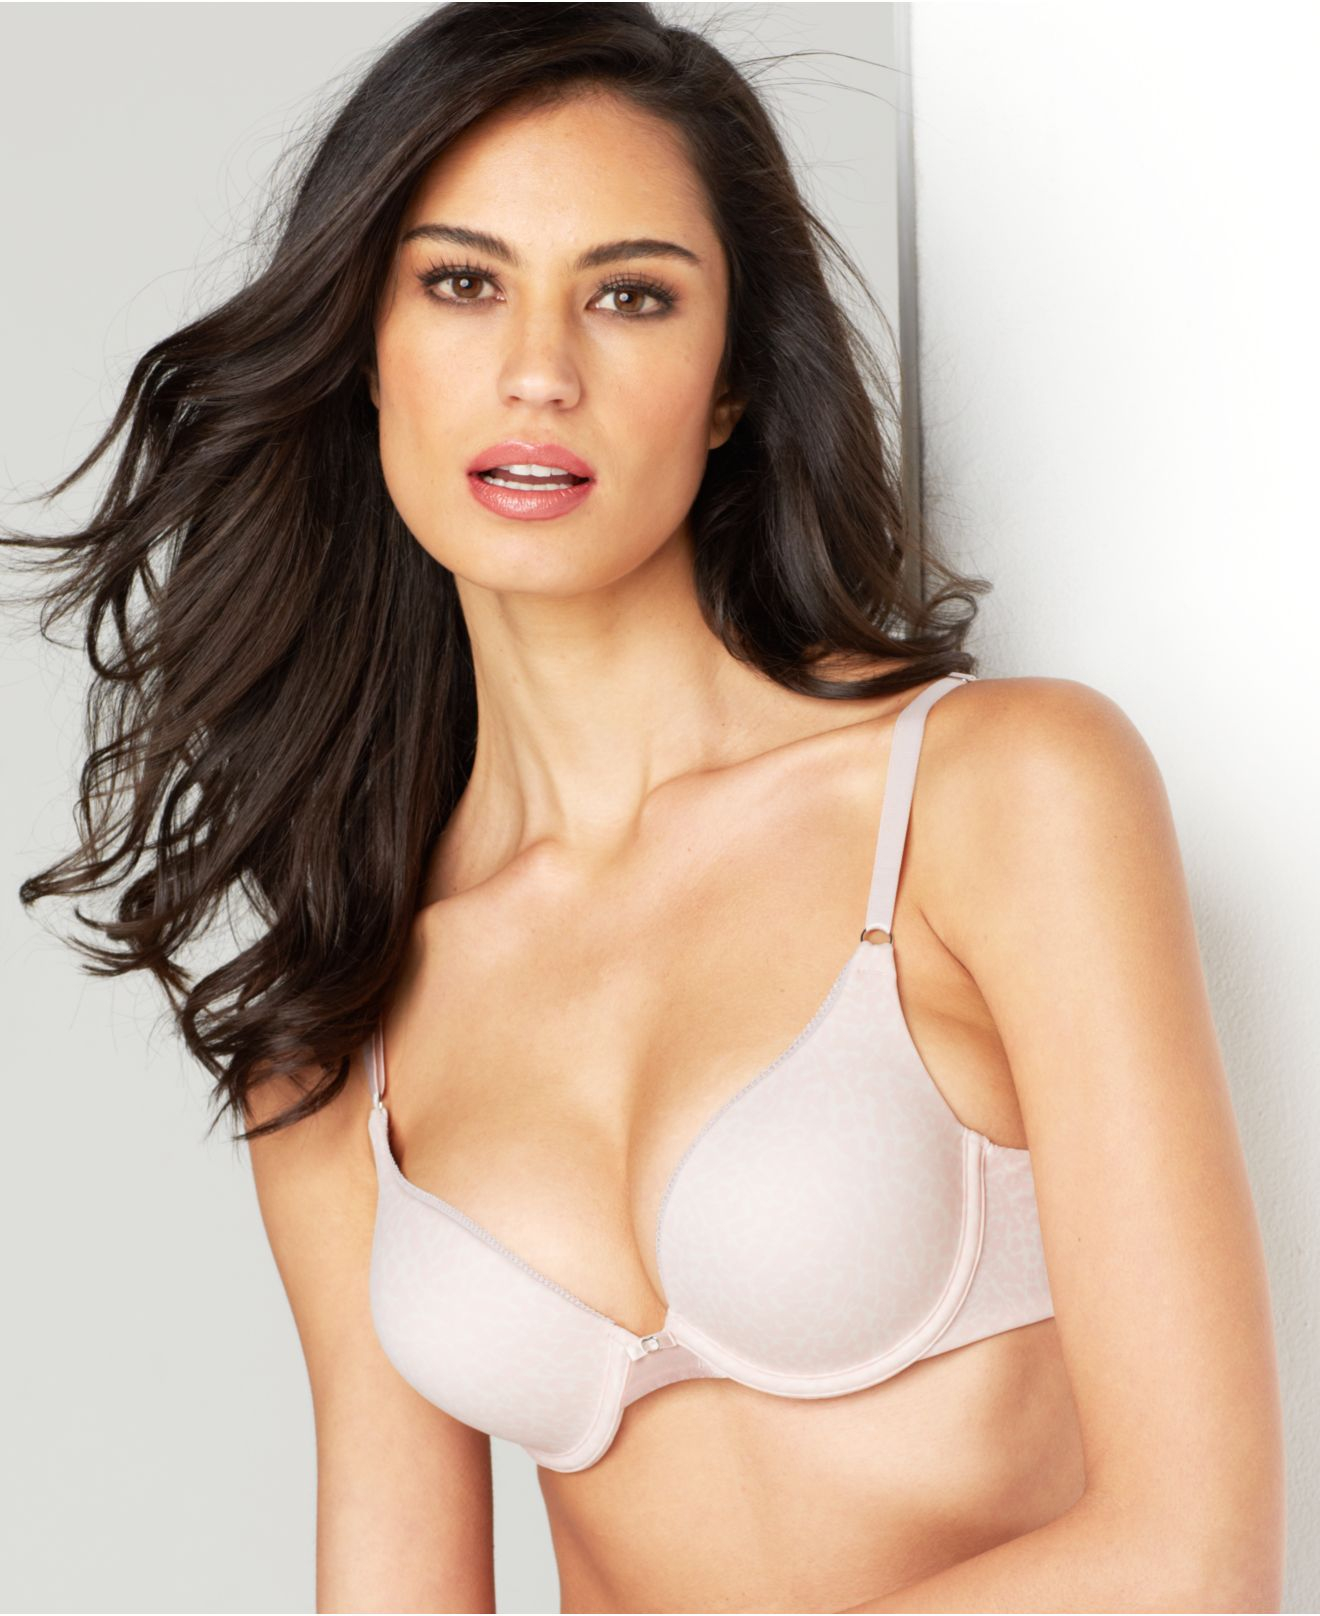 fc45cdec0b Lyst - Lily Of France Extreme Ego Boost Tailored Push Up Bra 2131101 ...